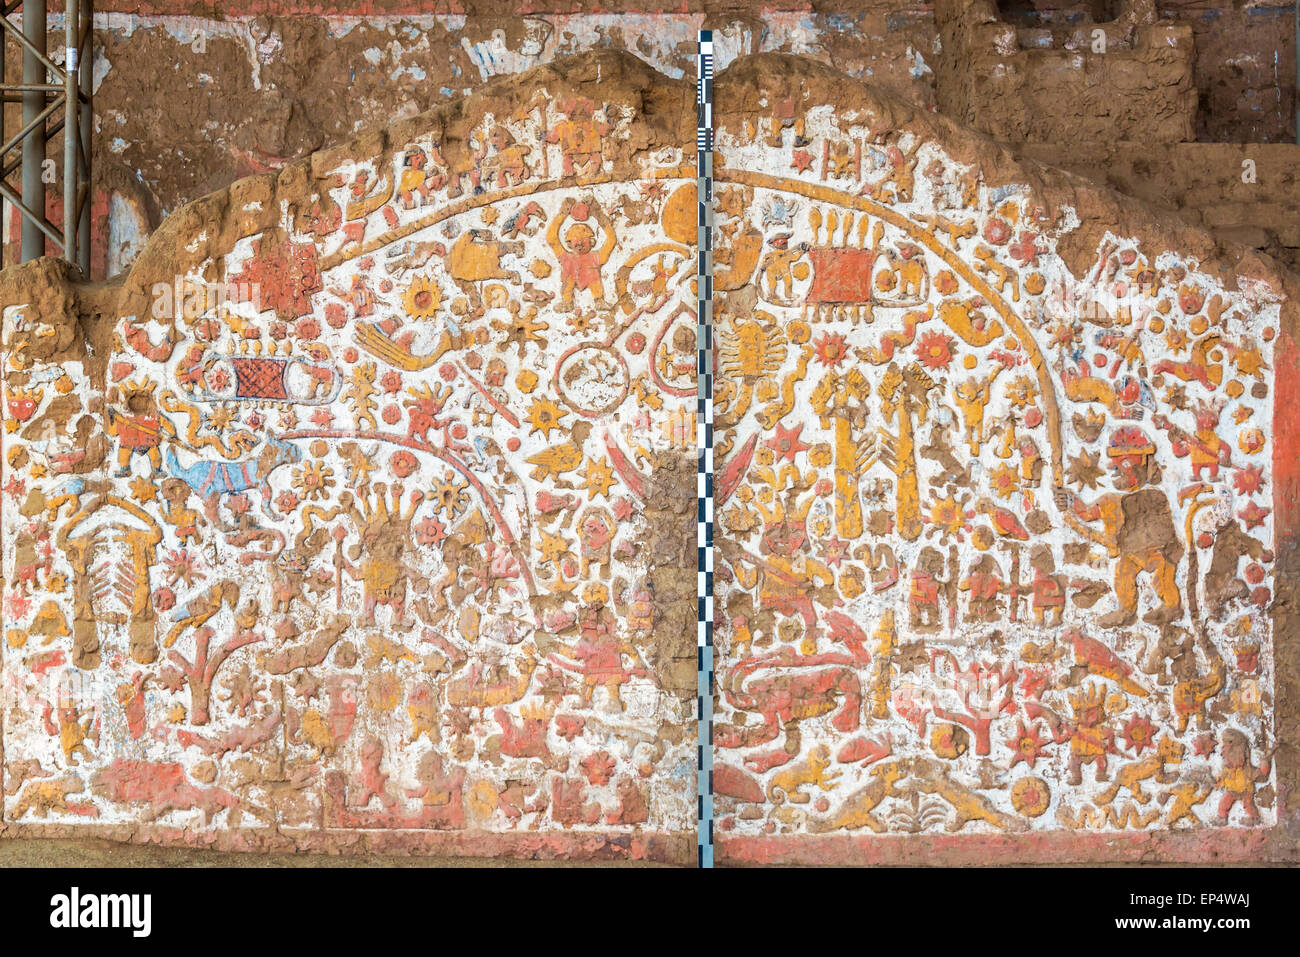 Ancient mural on the Huaca de la Luna in Trujillo, Peru - Stock Image